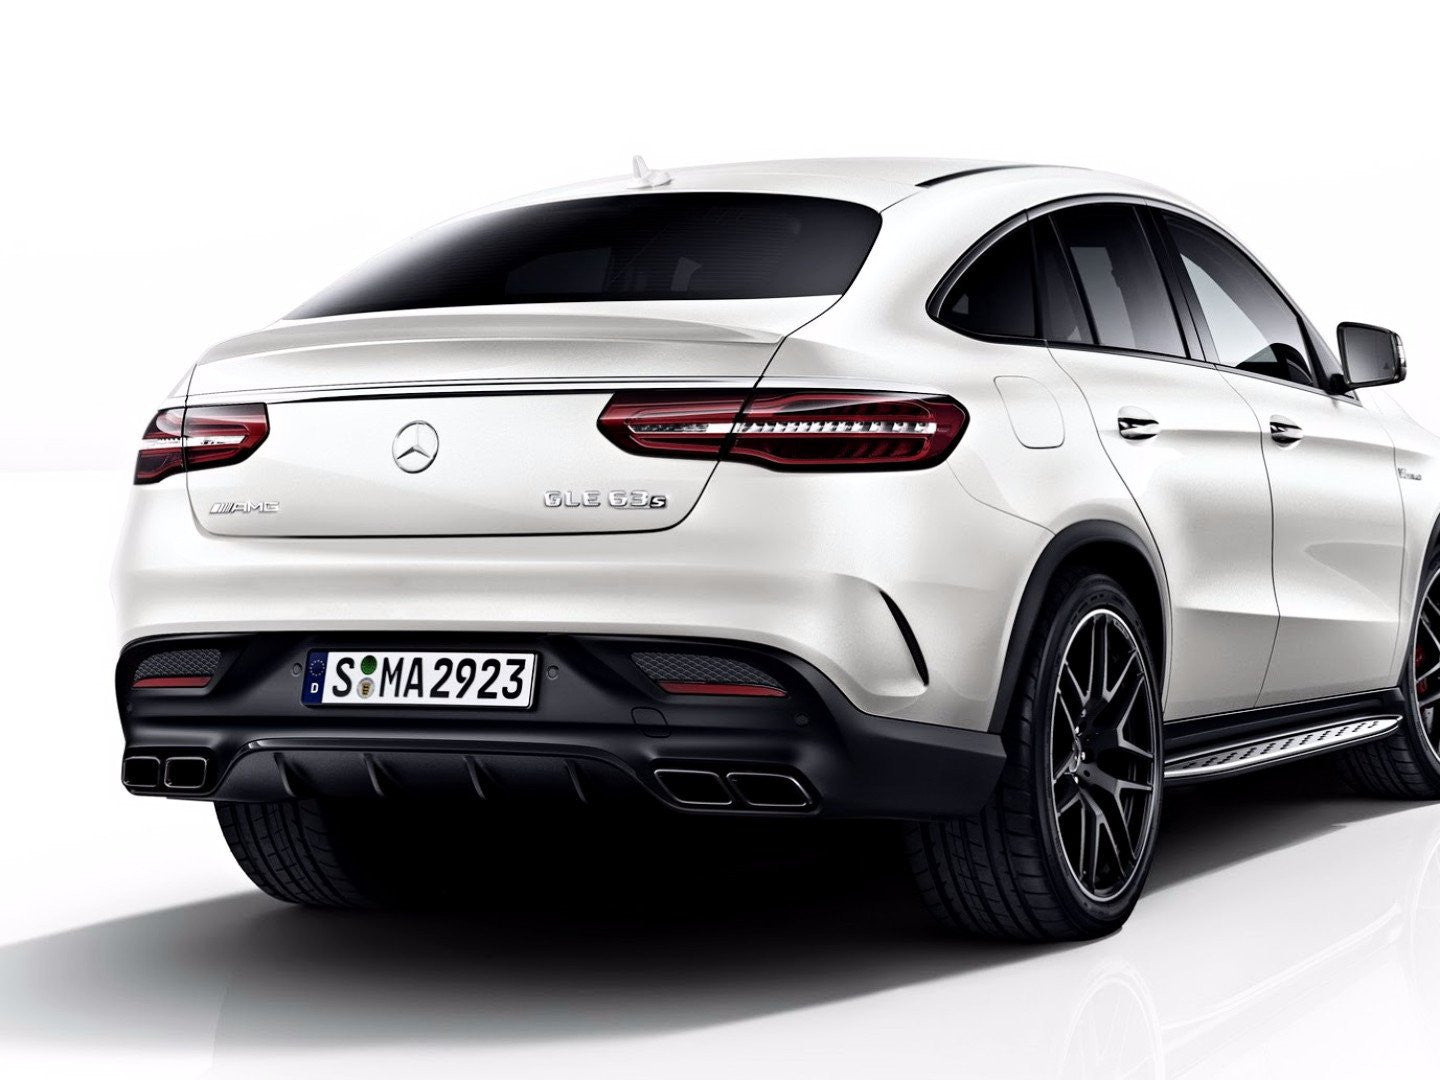 GLE63 AMG COUPE DIFFUSER KIT (GLE43 COUPE ONLY) - BODY KIT - Yomato Carbon - Montreal Canada